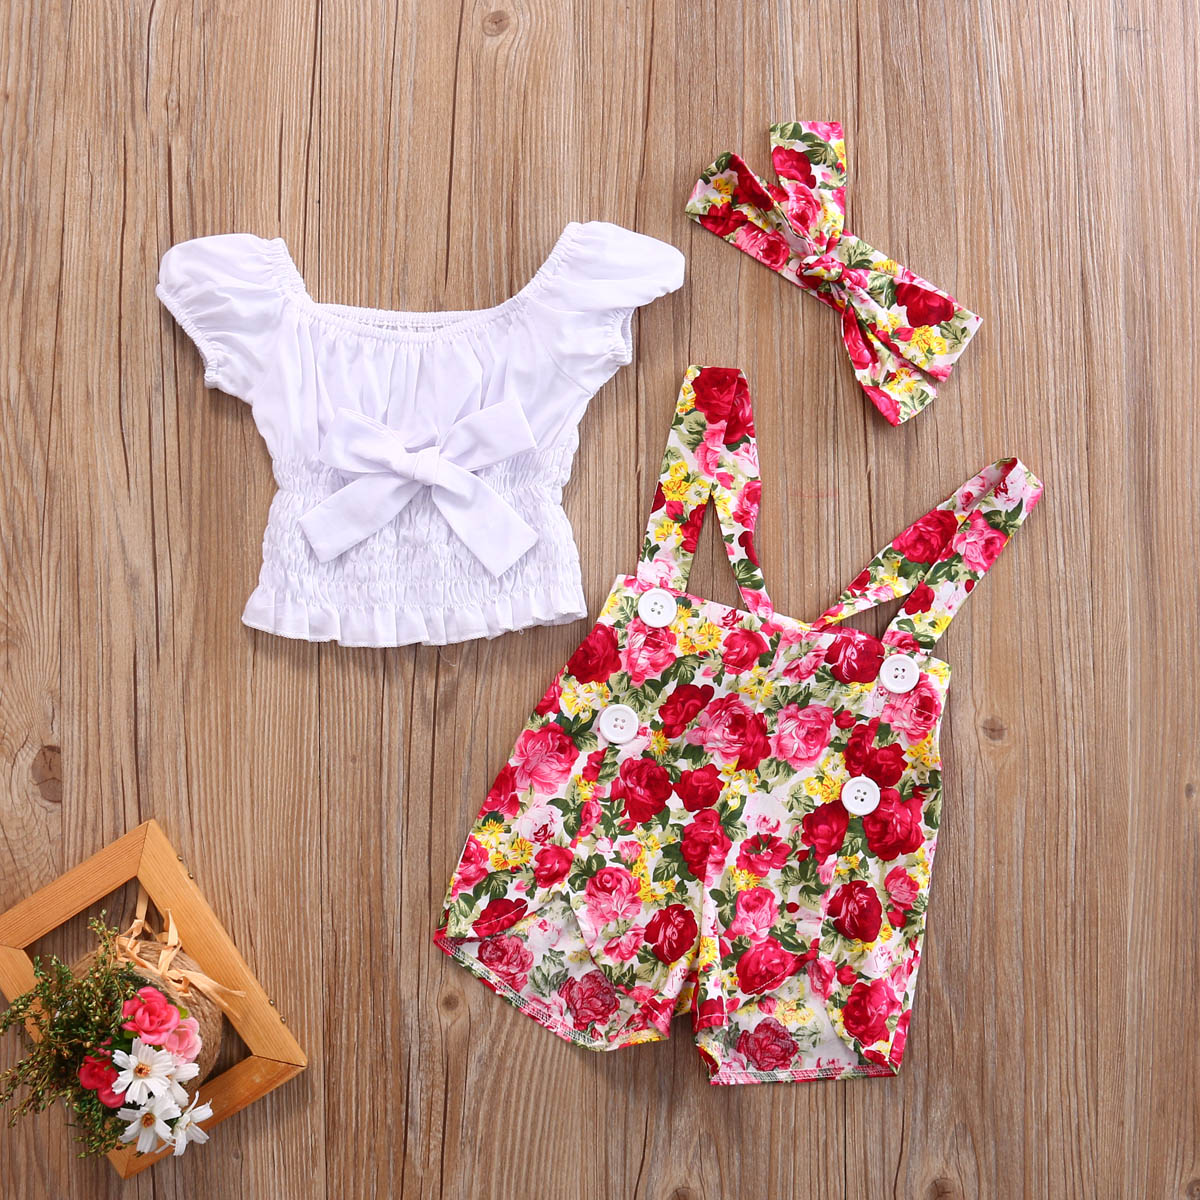 Kids Baby Girl Off Shoulder T shirt Tops +Floral Pants Overalls Headband 3pcs Outfits Clothes Set Summer Clothing 0-4Y 3pcs kids baby clothes girl lace floral tops t shirt pants shorts outfits set children infant girls clothing